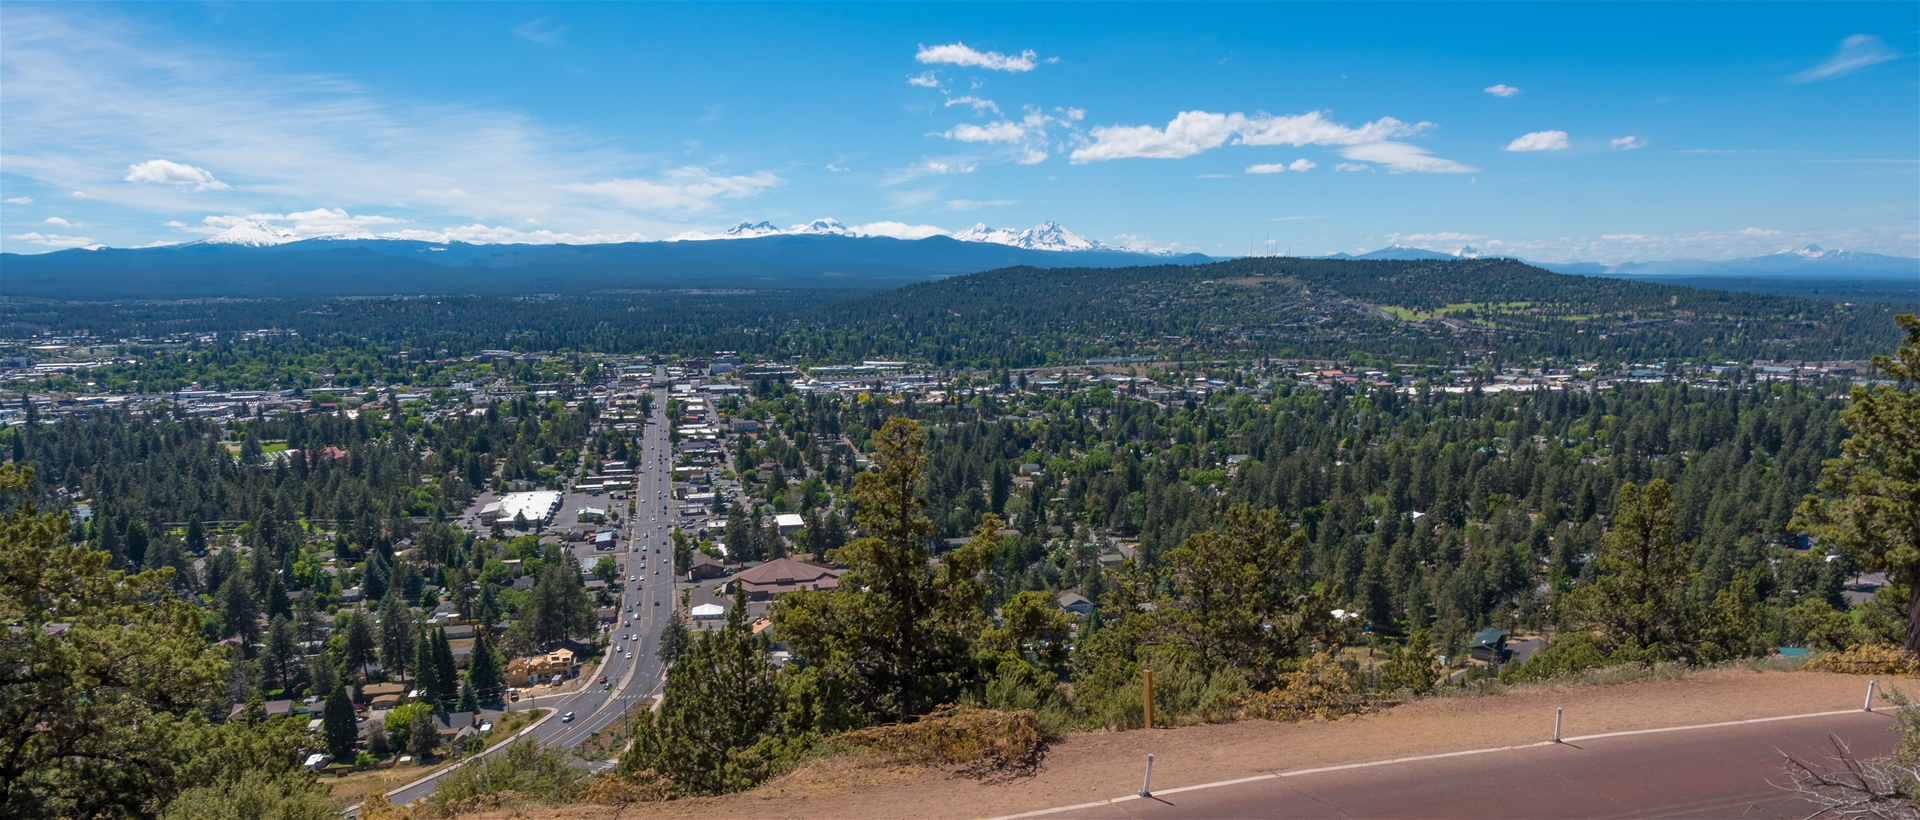 Panoramic of Bend Oregon with blue skys